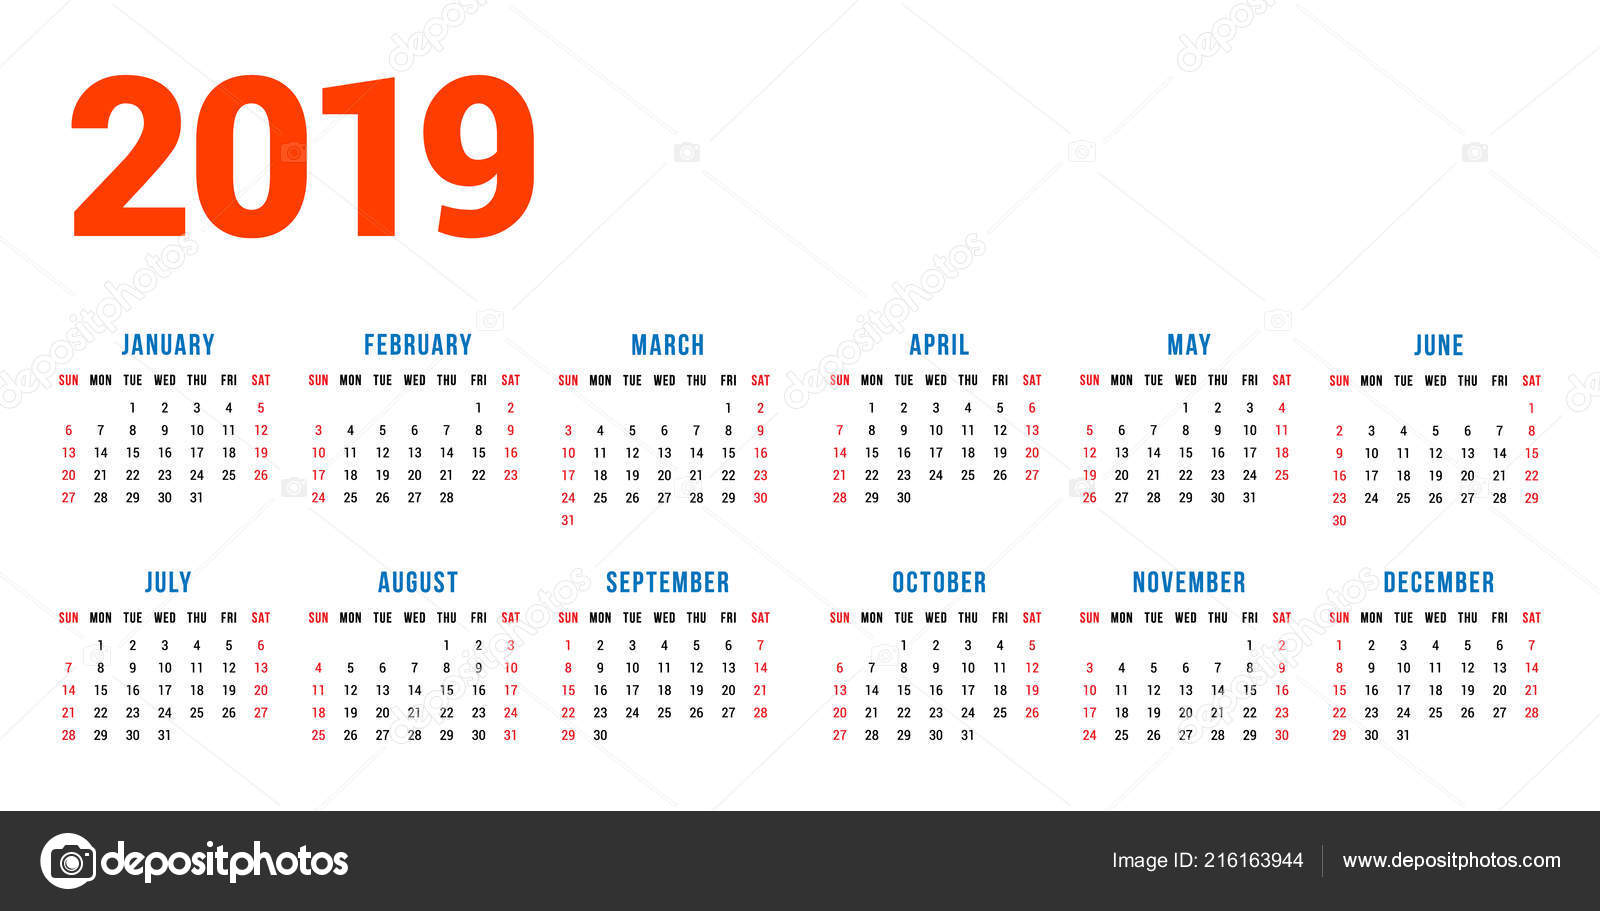 calendar 2019 year white background week starts sunday columns rows stock vector